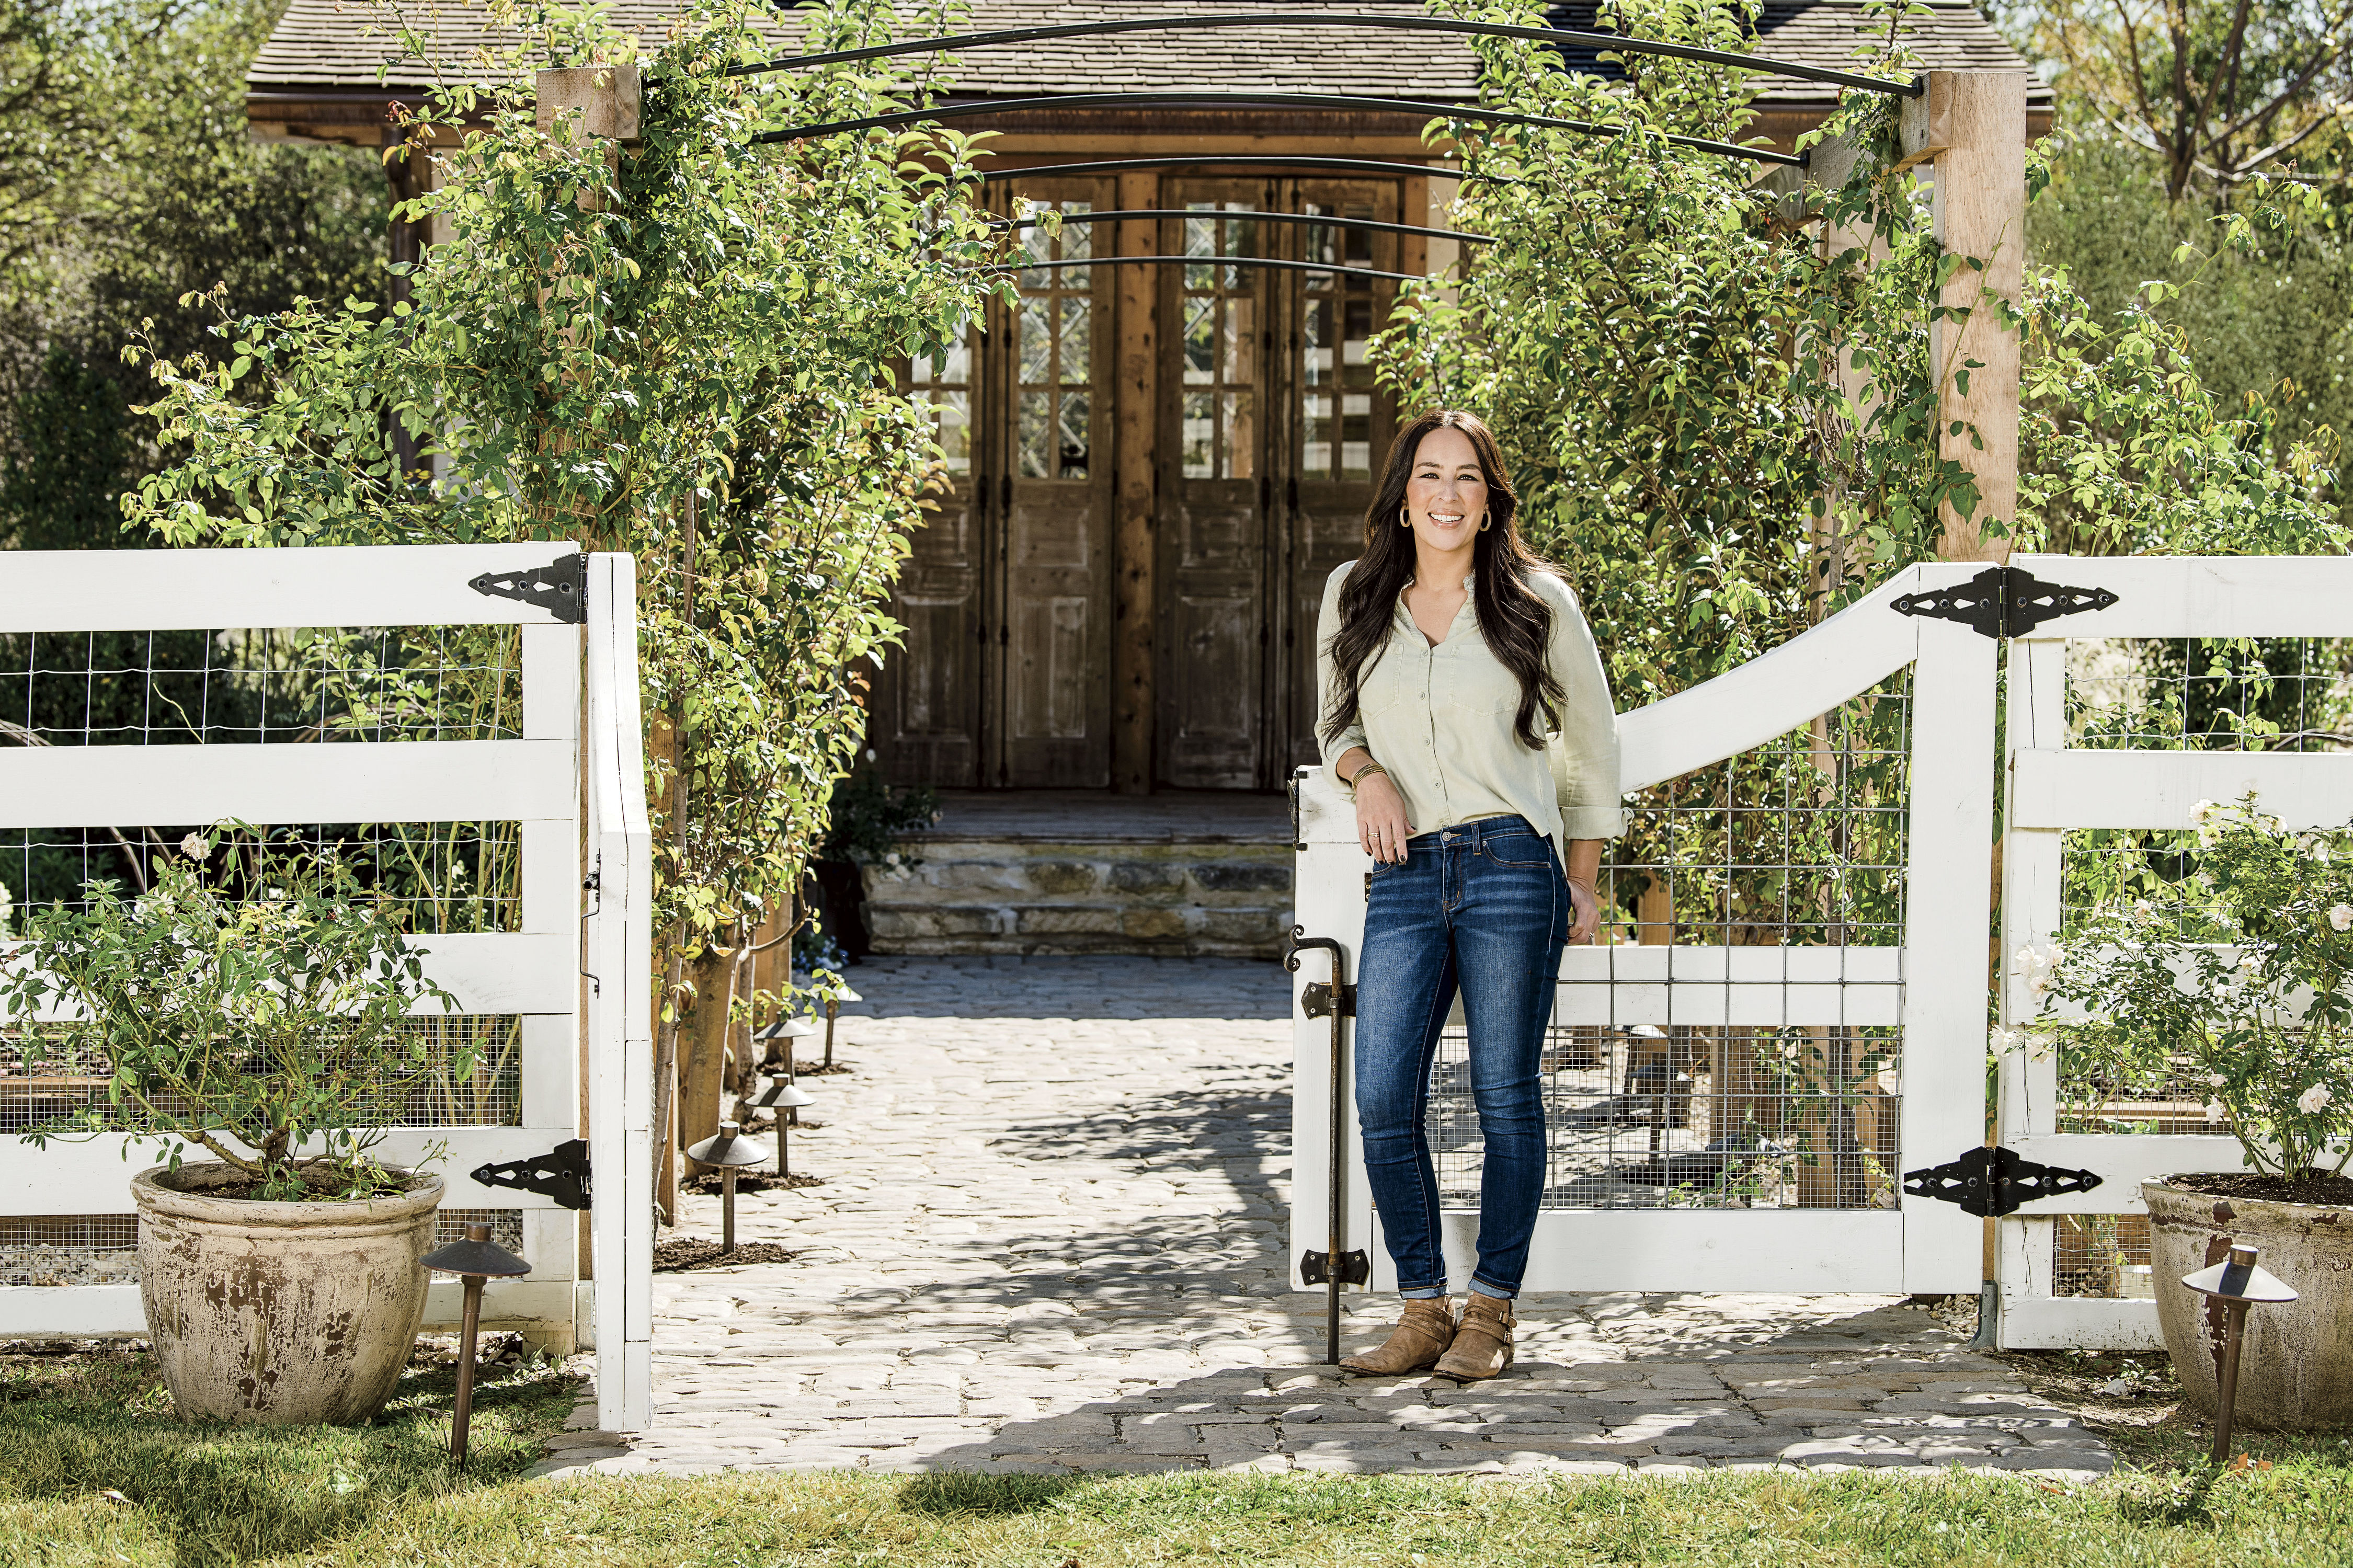 Joanna Gaines on Learning to Let Go of Perfection and Finding Grace